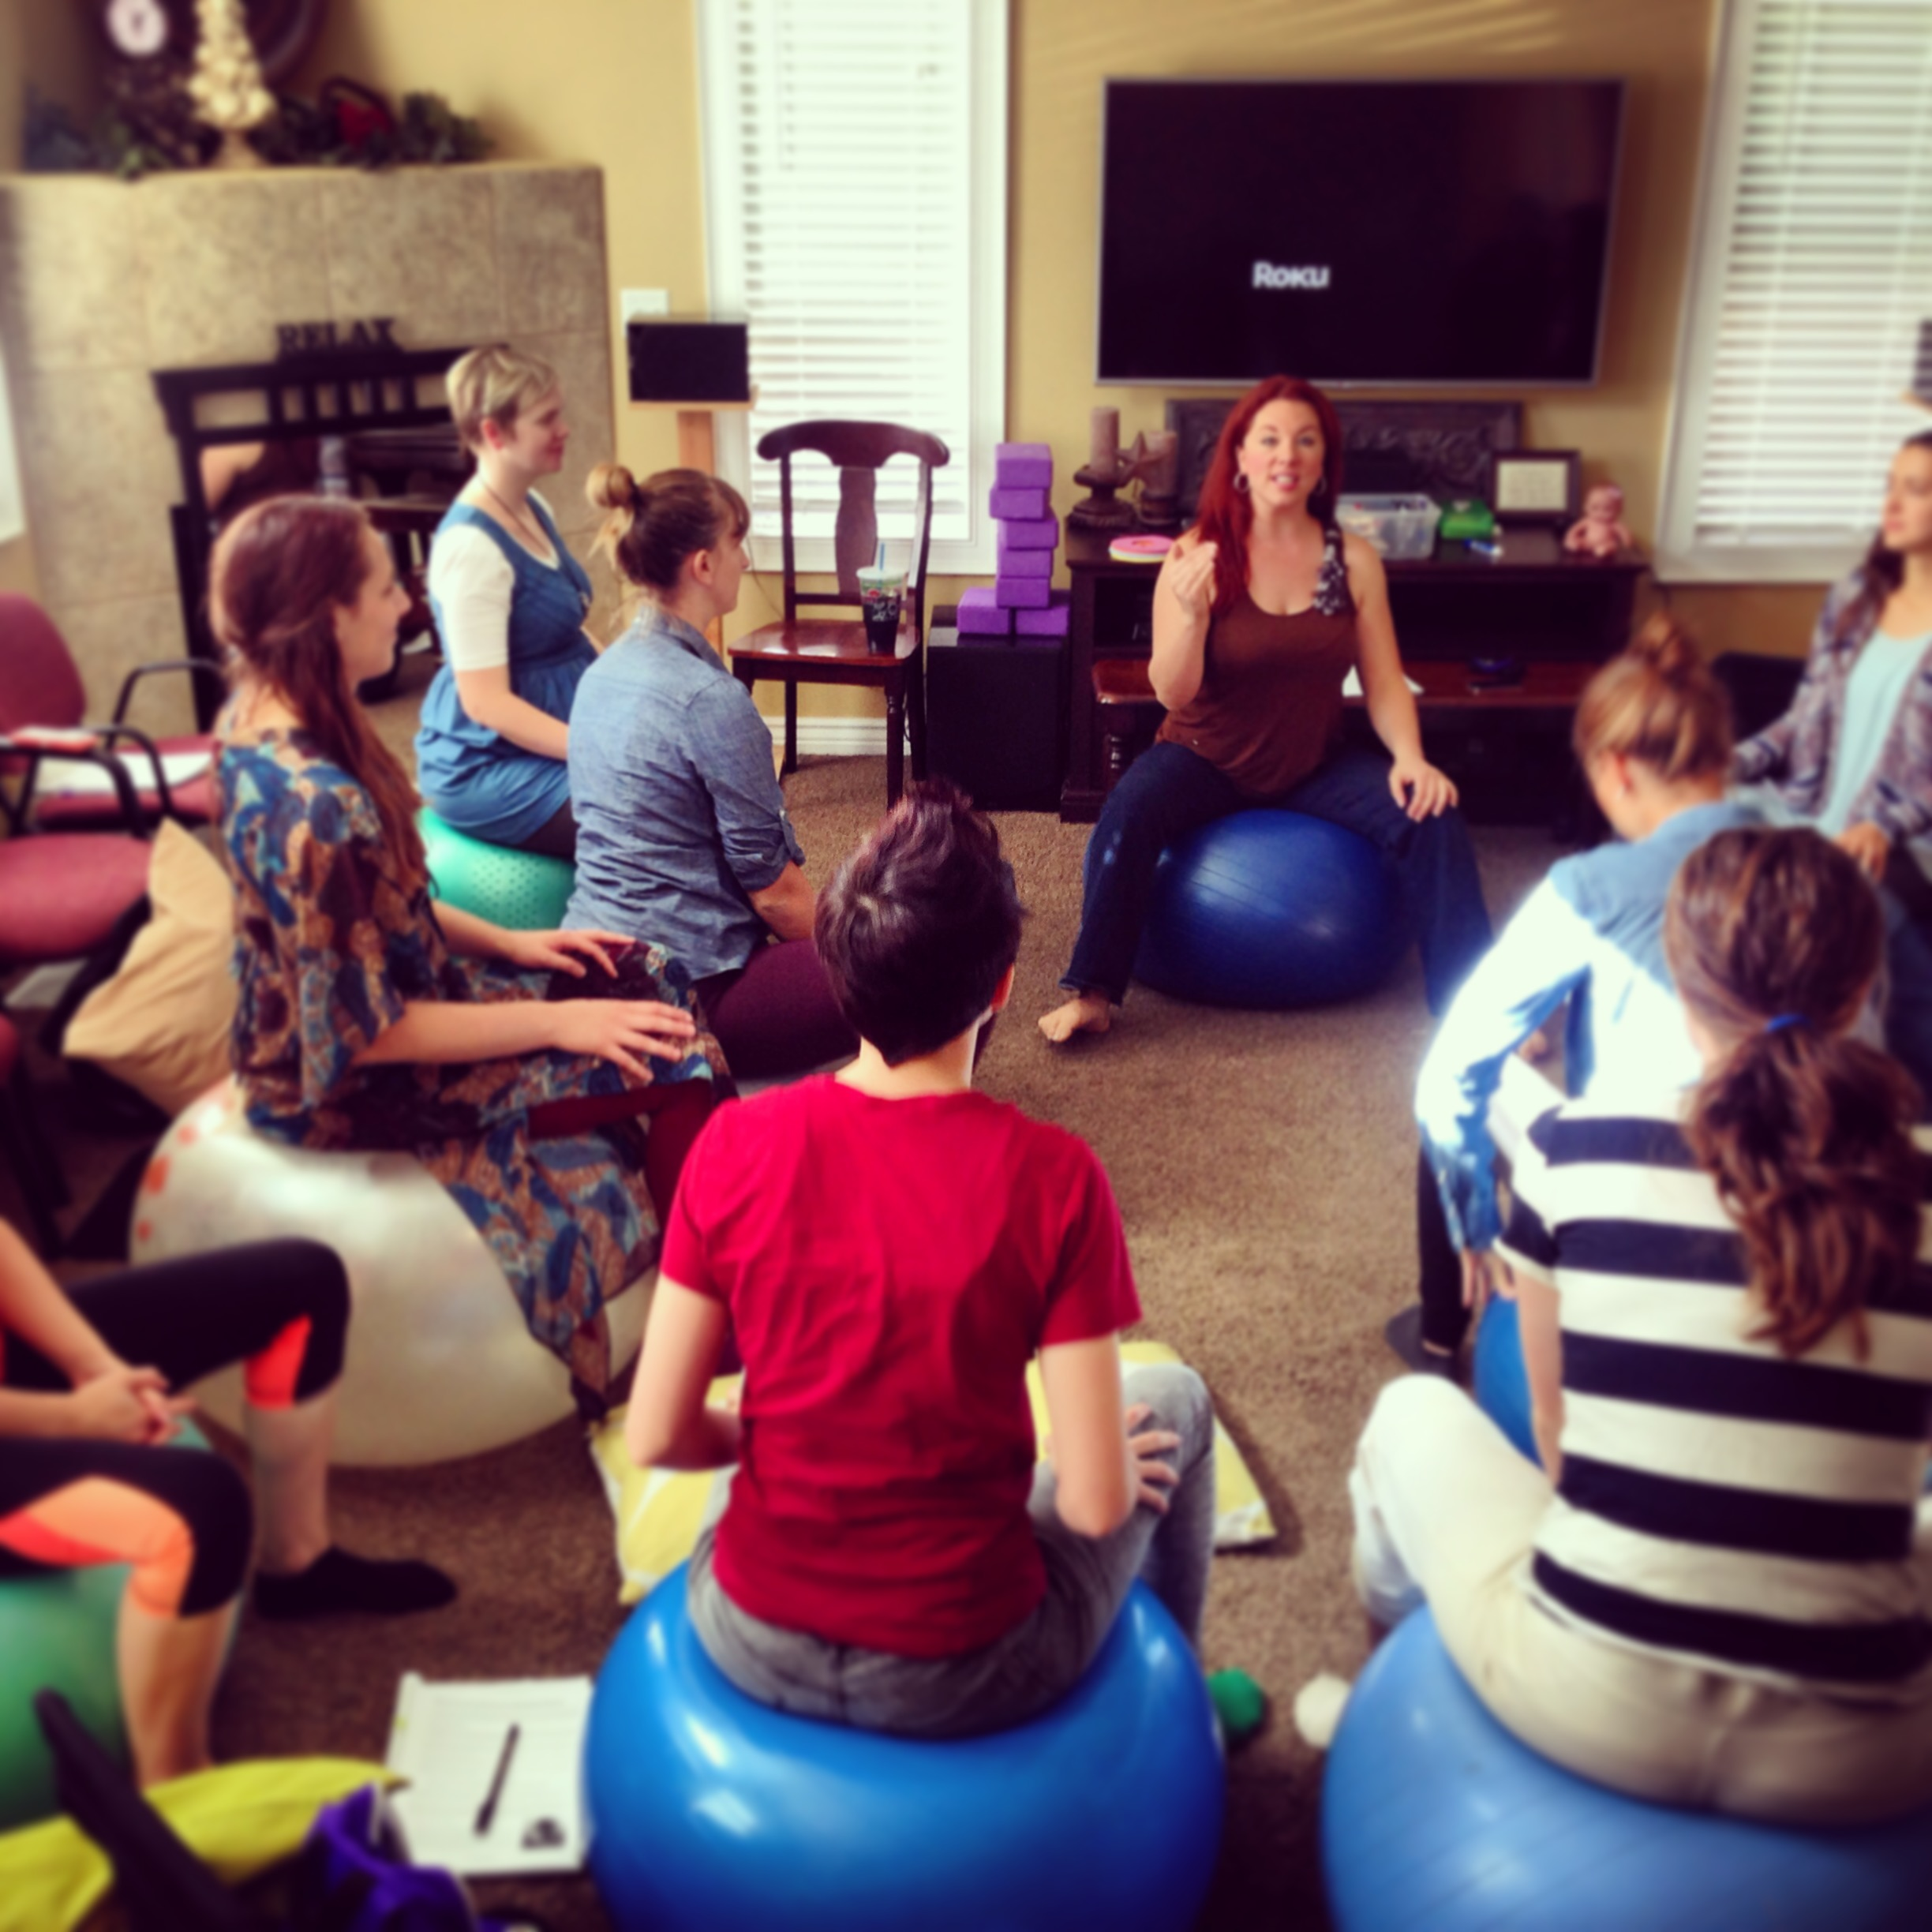 Lauralyn Curtis teaching the Hypnodoula class